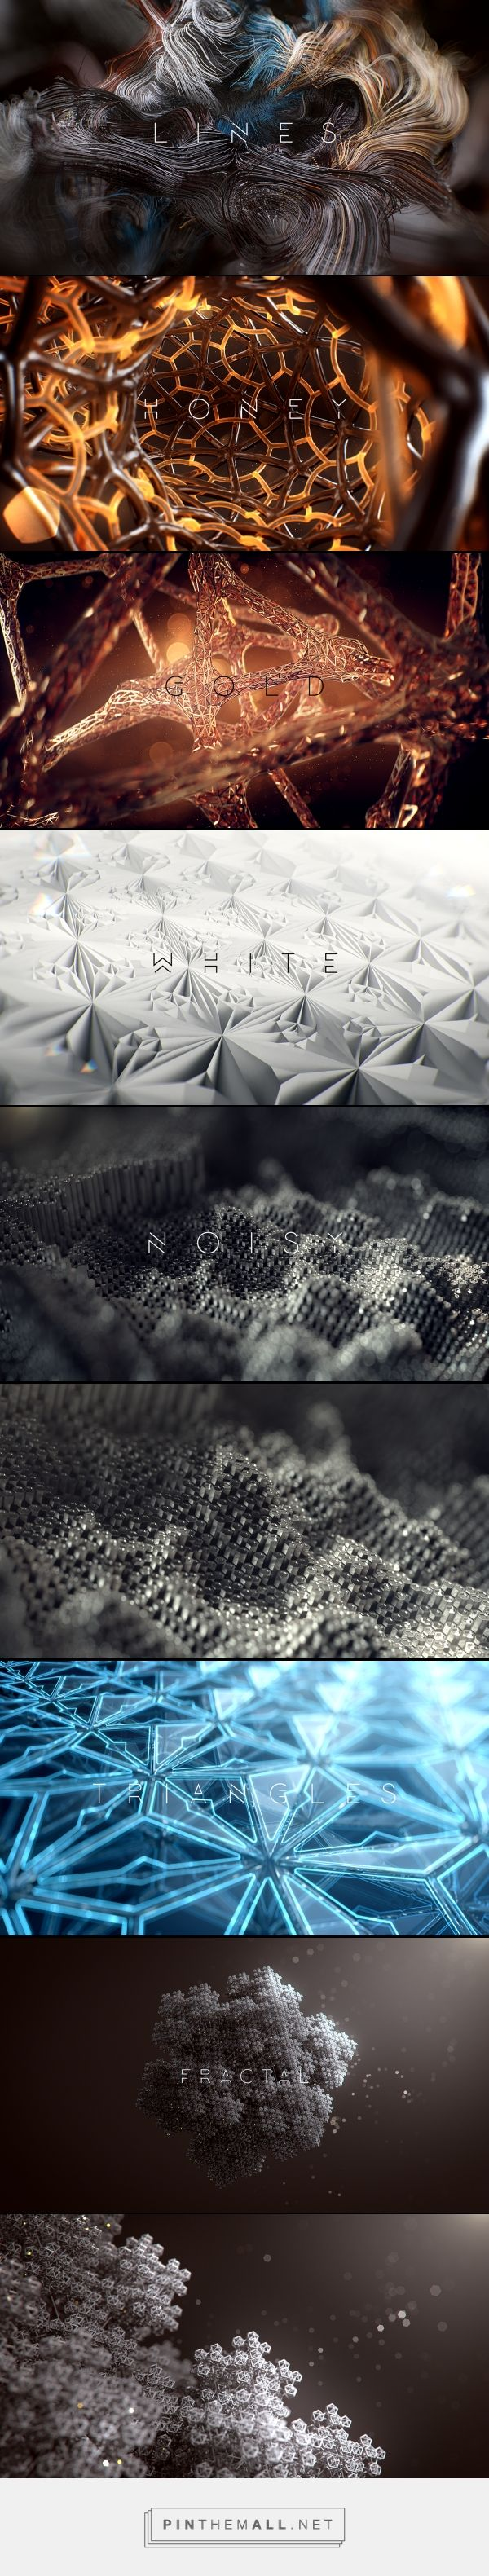 Abstract on Behance... - a grouped images picture - Pin Them All